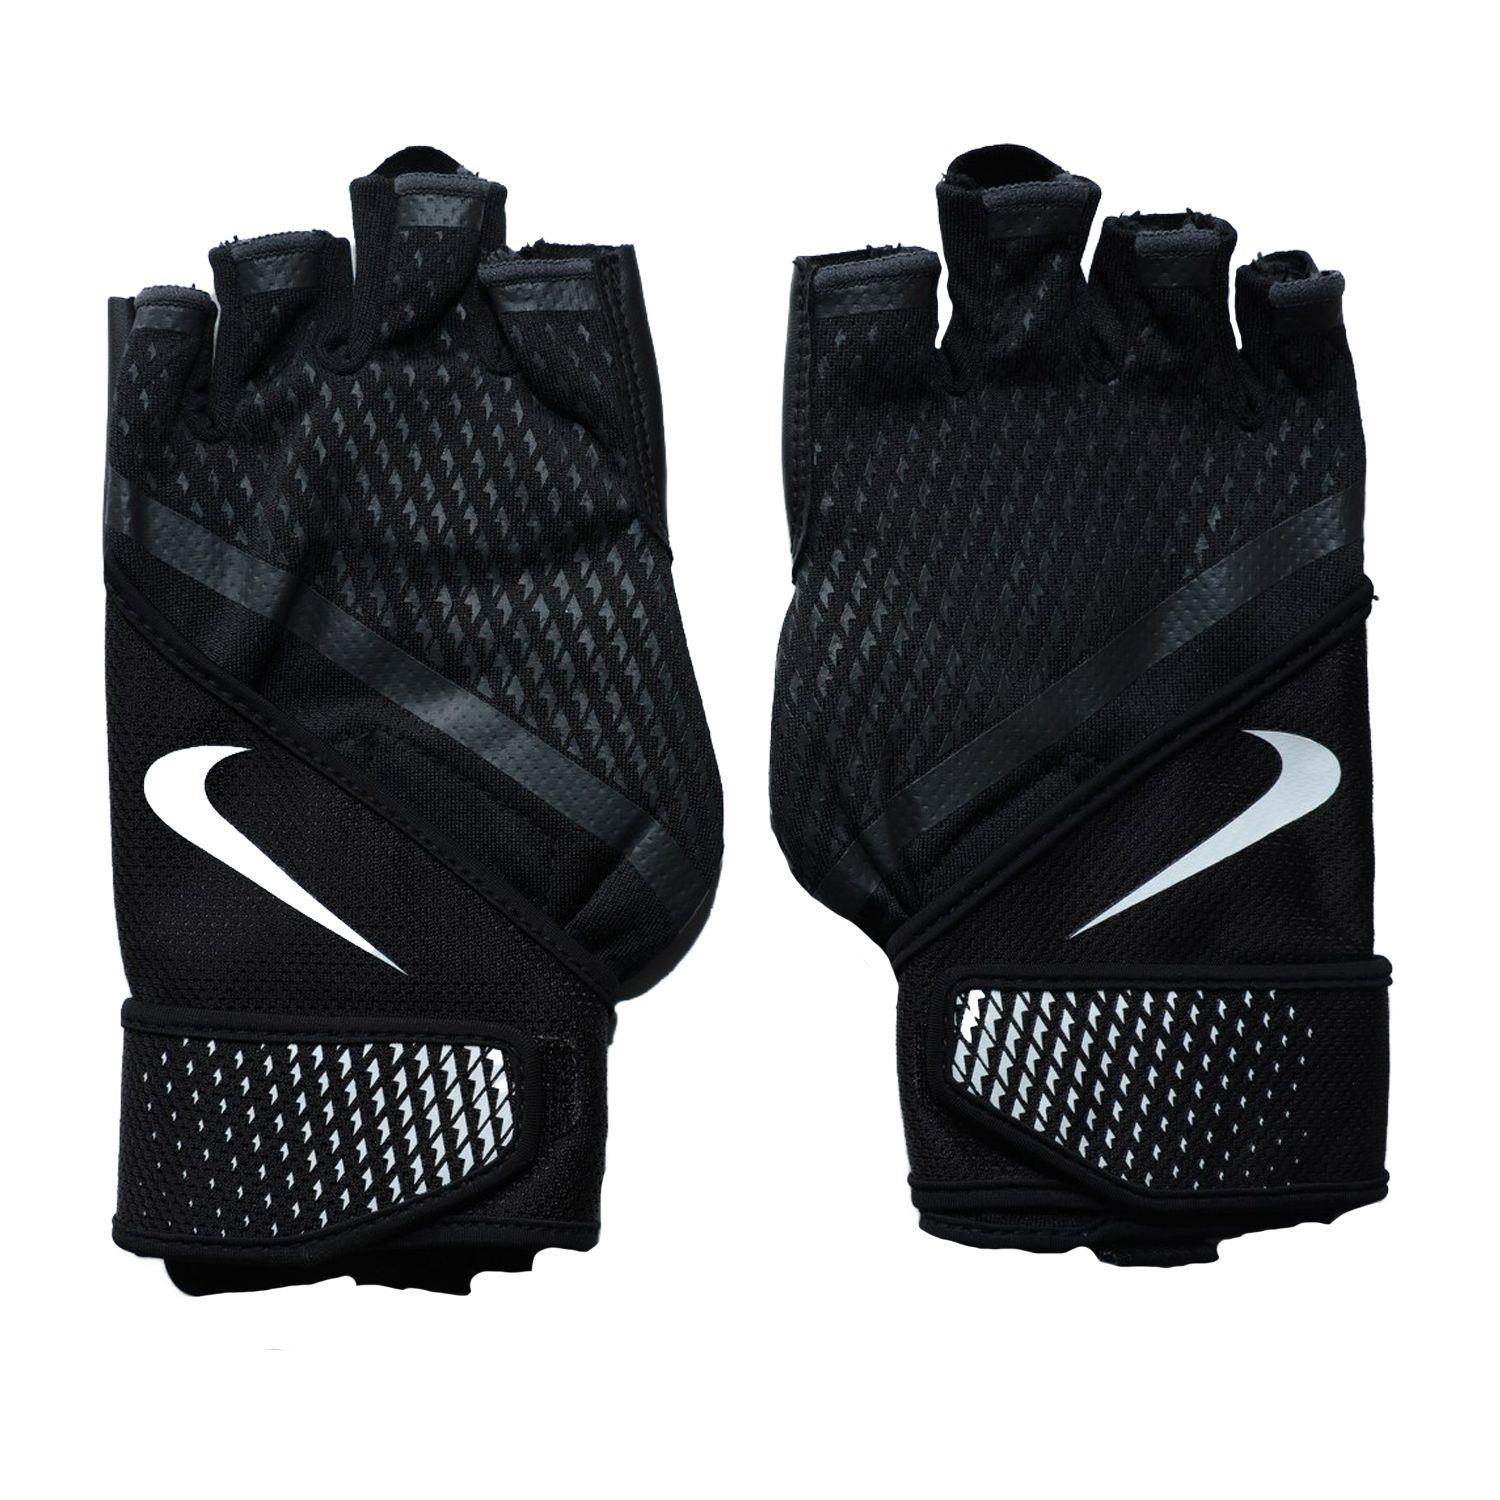 Nike N.LG.B4.031.XL MEN'S DESTROYER TRAINING GLOVES SPOR GYM FITNESS AĞIRLIK ELDİVENİ XL BEDEN